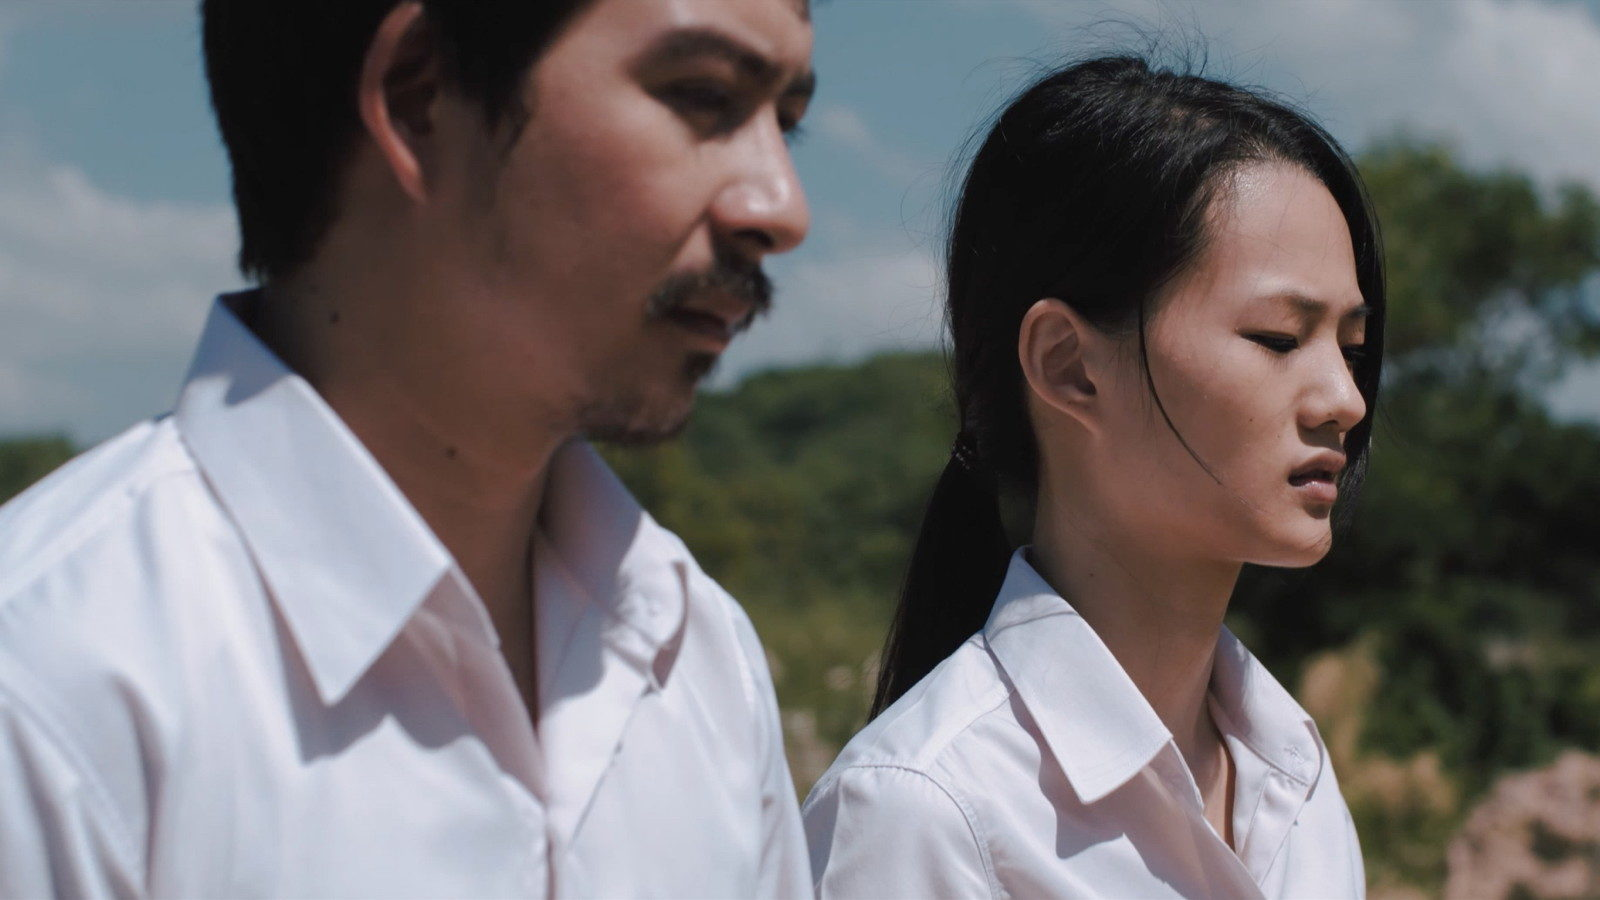 BY THE TIME IT GETS DARK - THAILAND    Official Oscars Submission for Foreign Language Film Award